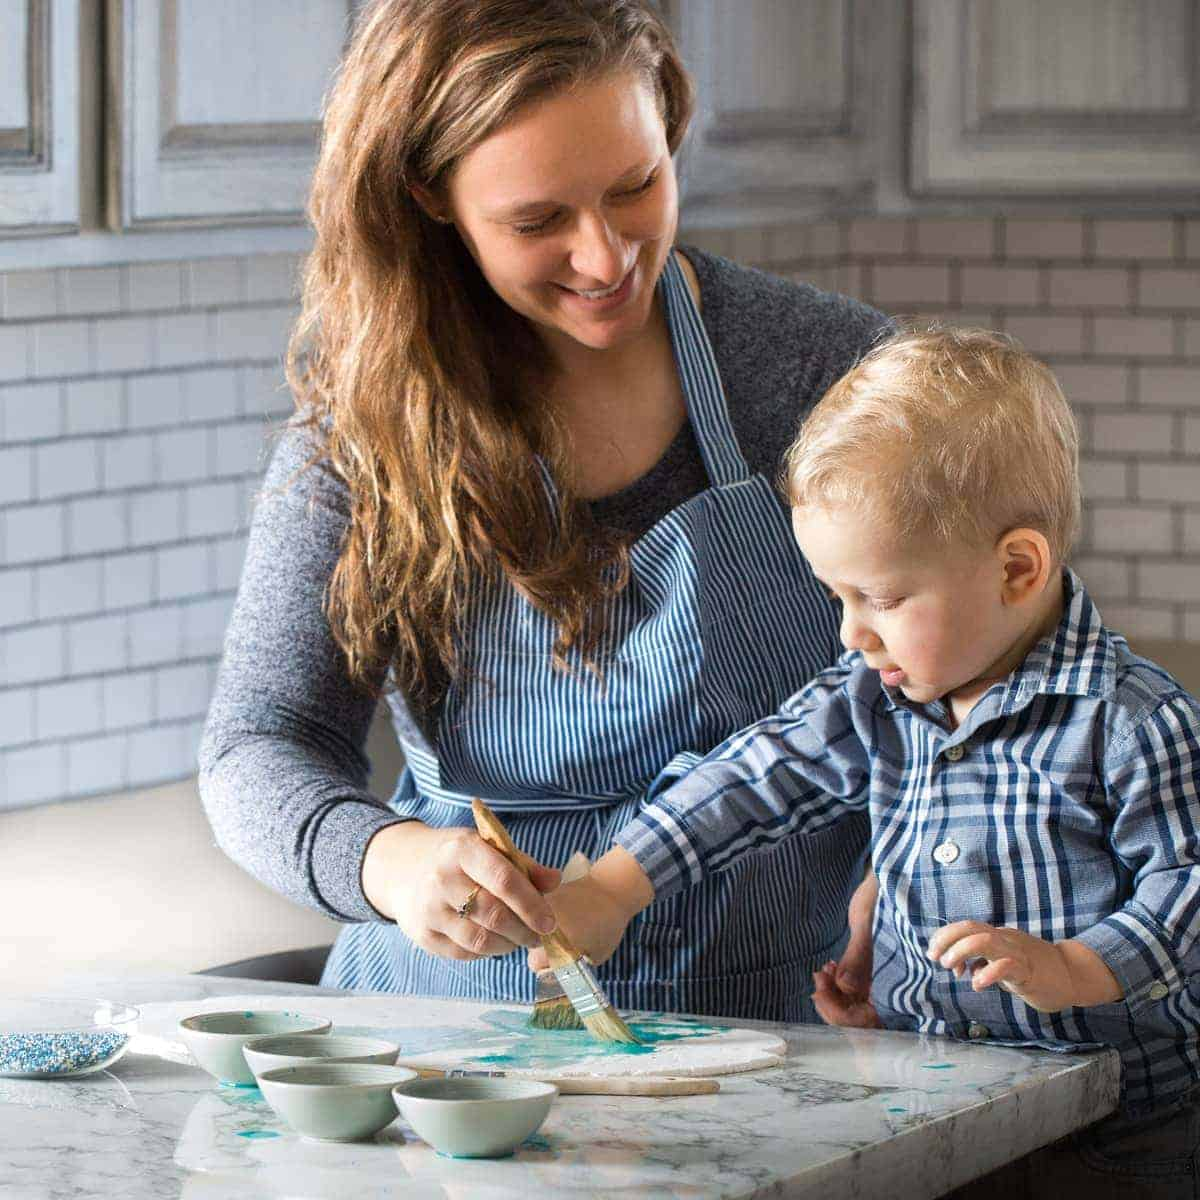 snowflake-cookie-decorating-with-toddler-jena-carlin-photography-web-7